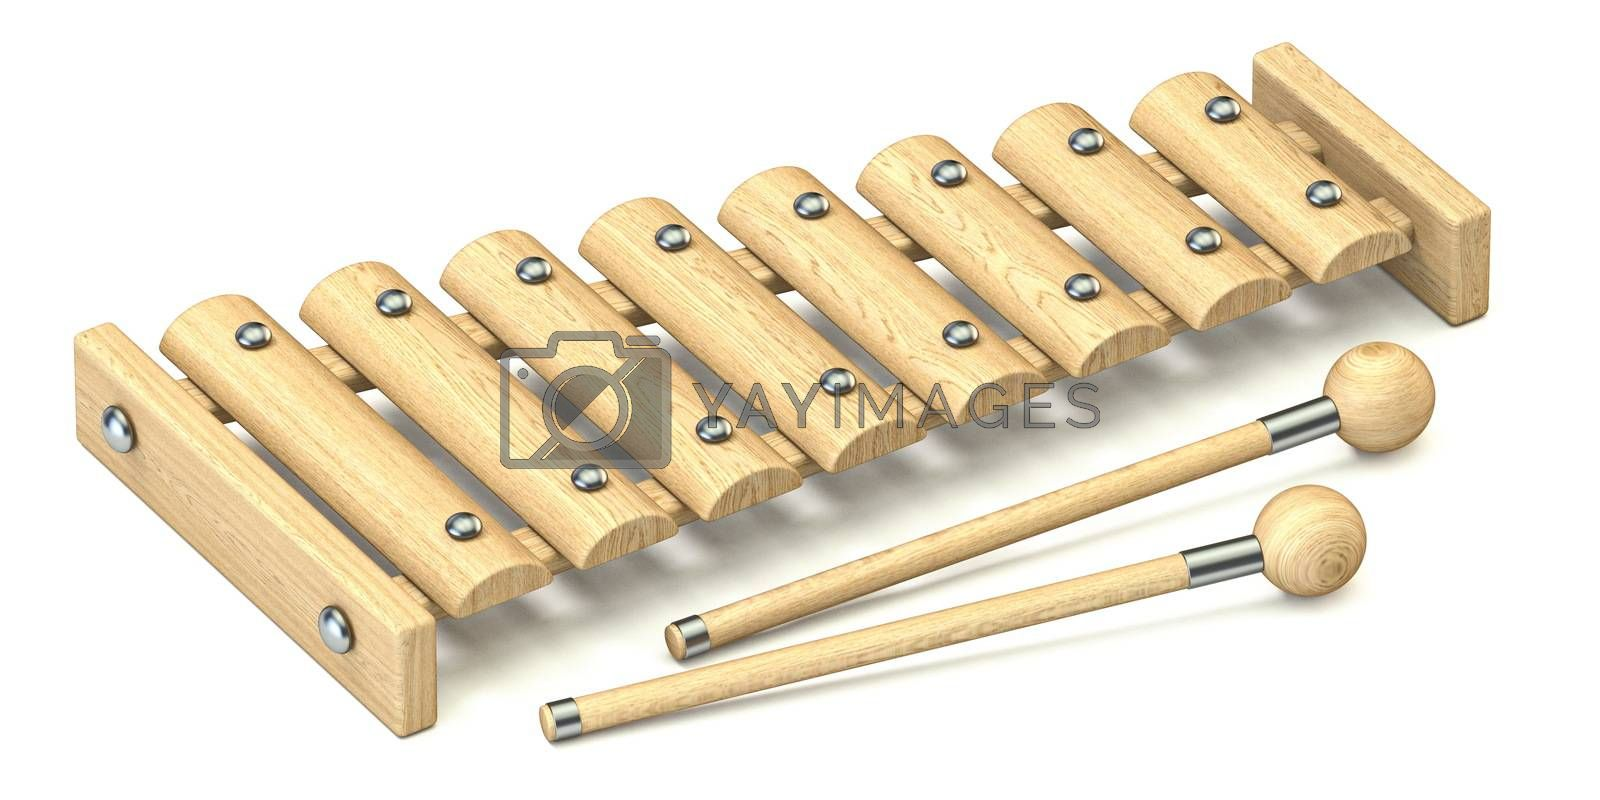 Wooden xylophone 3D render illustration isolated on white background